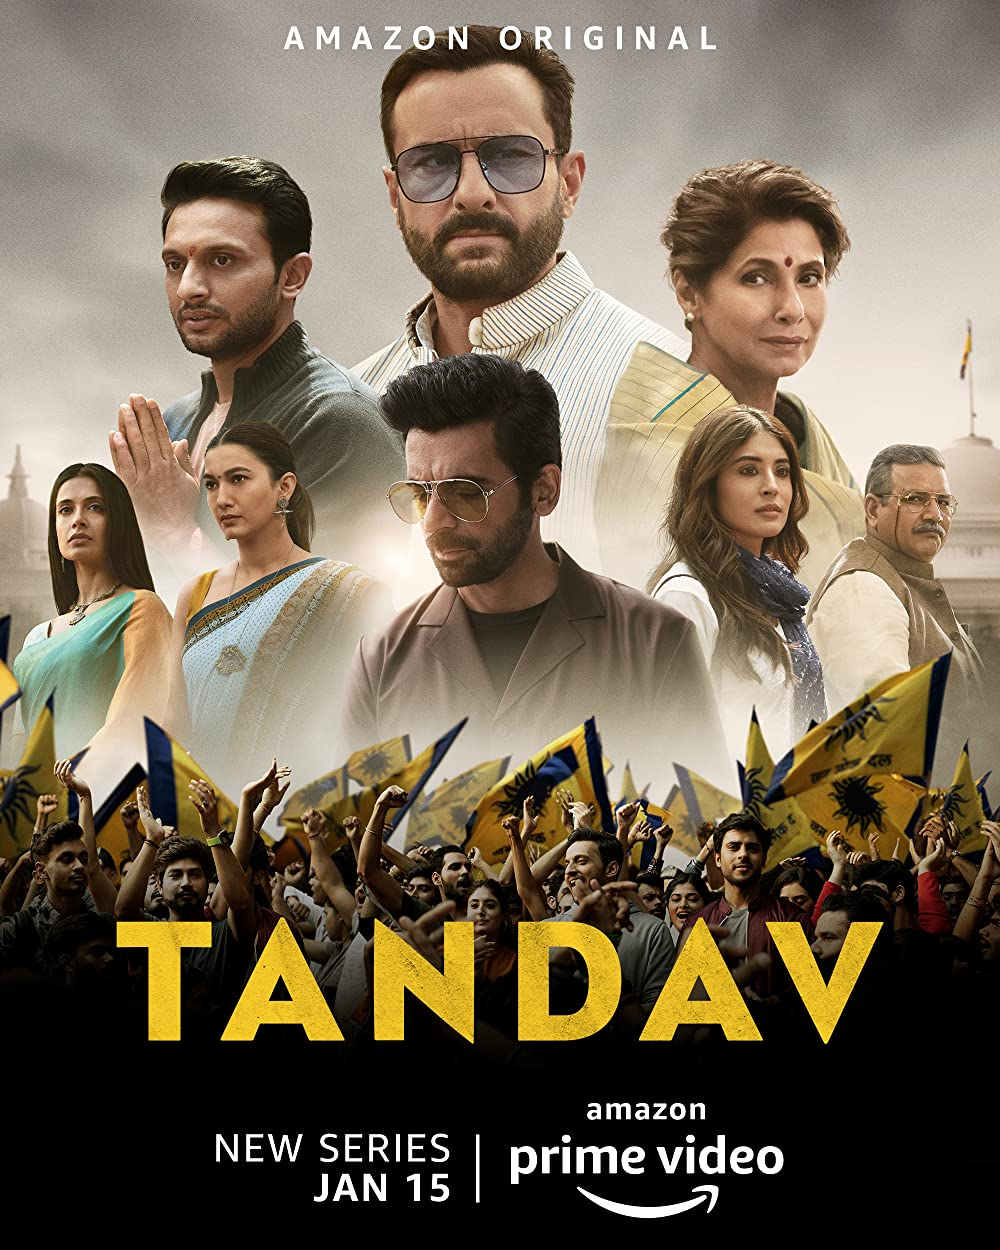 Tandav S01 2021 Hindi Amazon Original Complete Web Series 720p HDRip 2GB Download